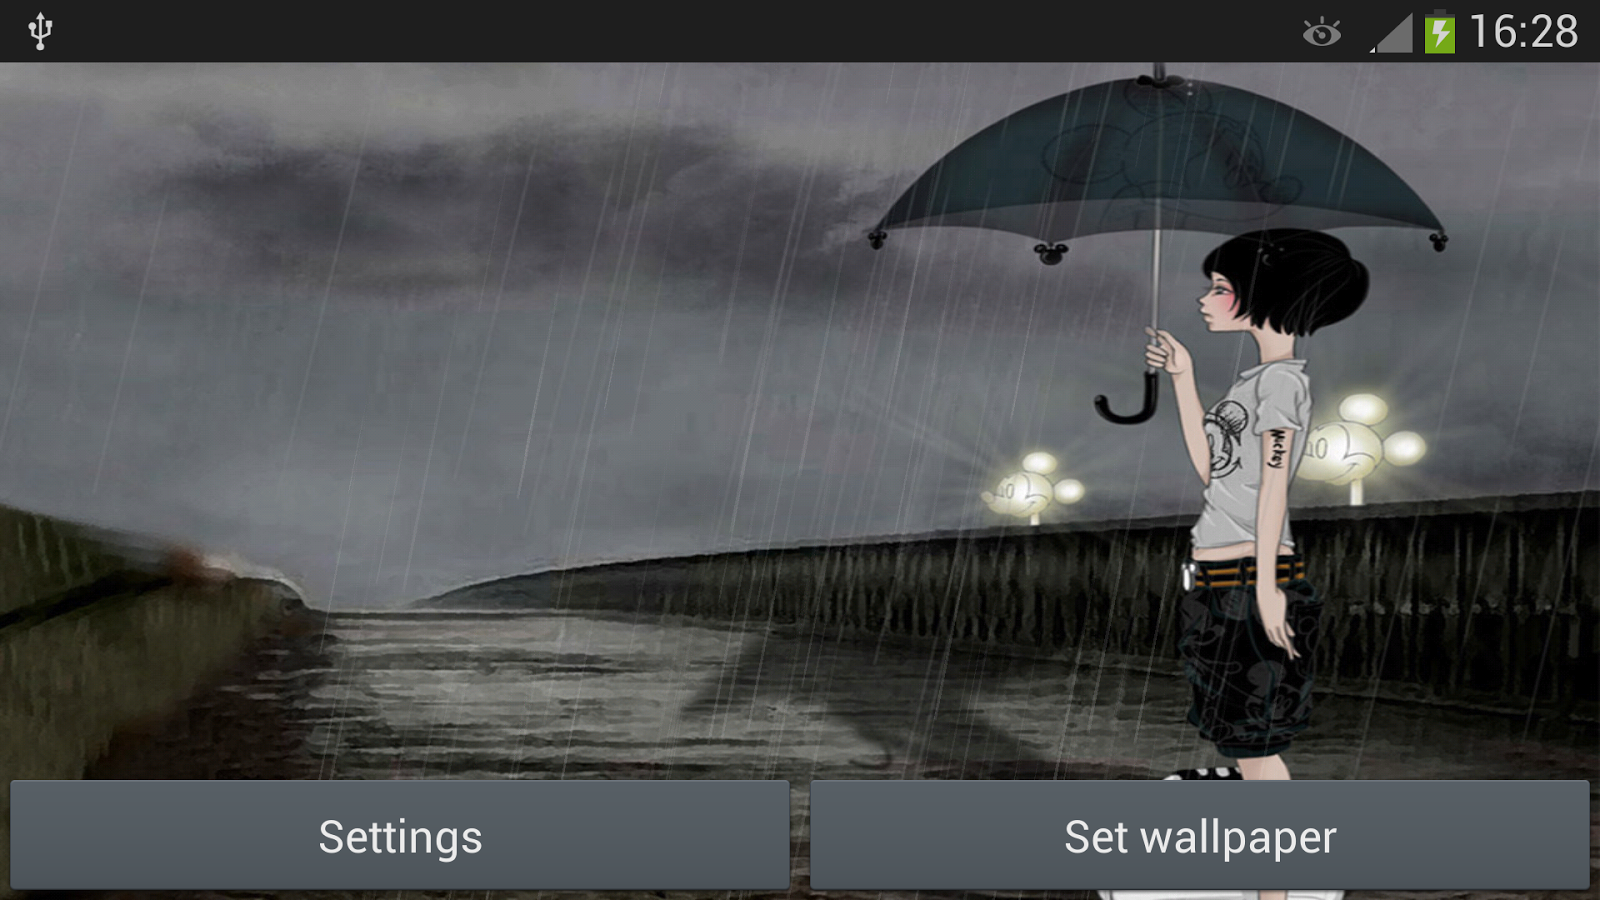 Rainy day girl live wallpaper android apps on google play rainy day girl live wallpaper screenshot ccuart Gallery